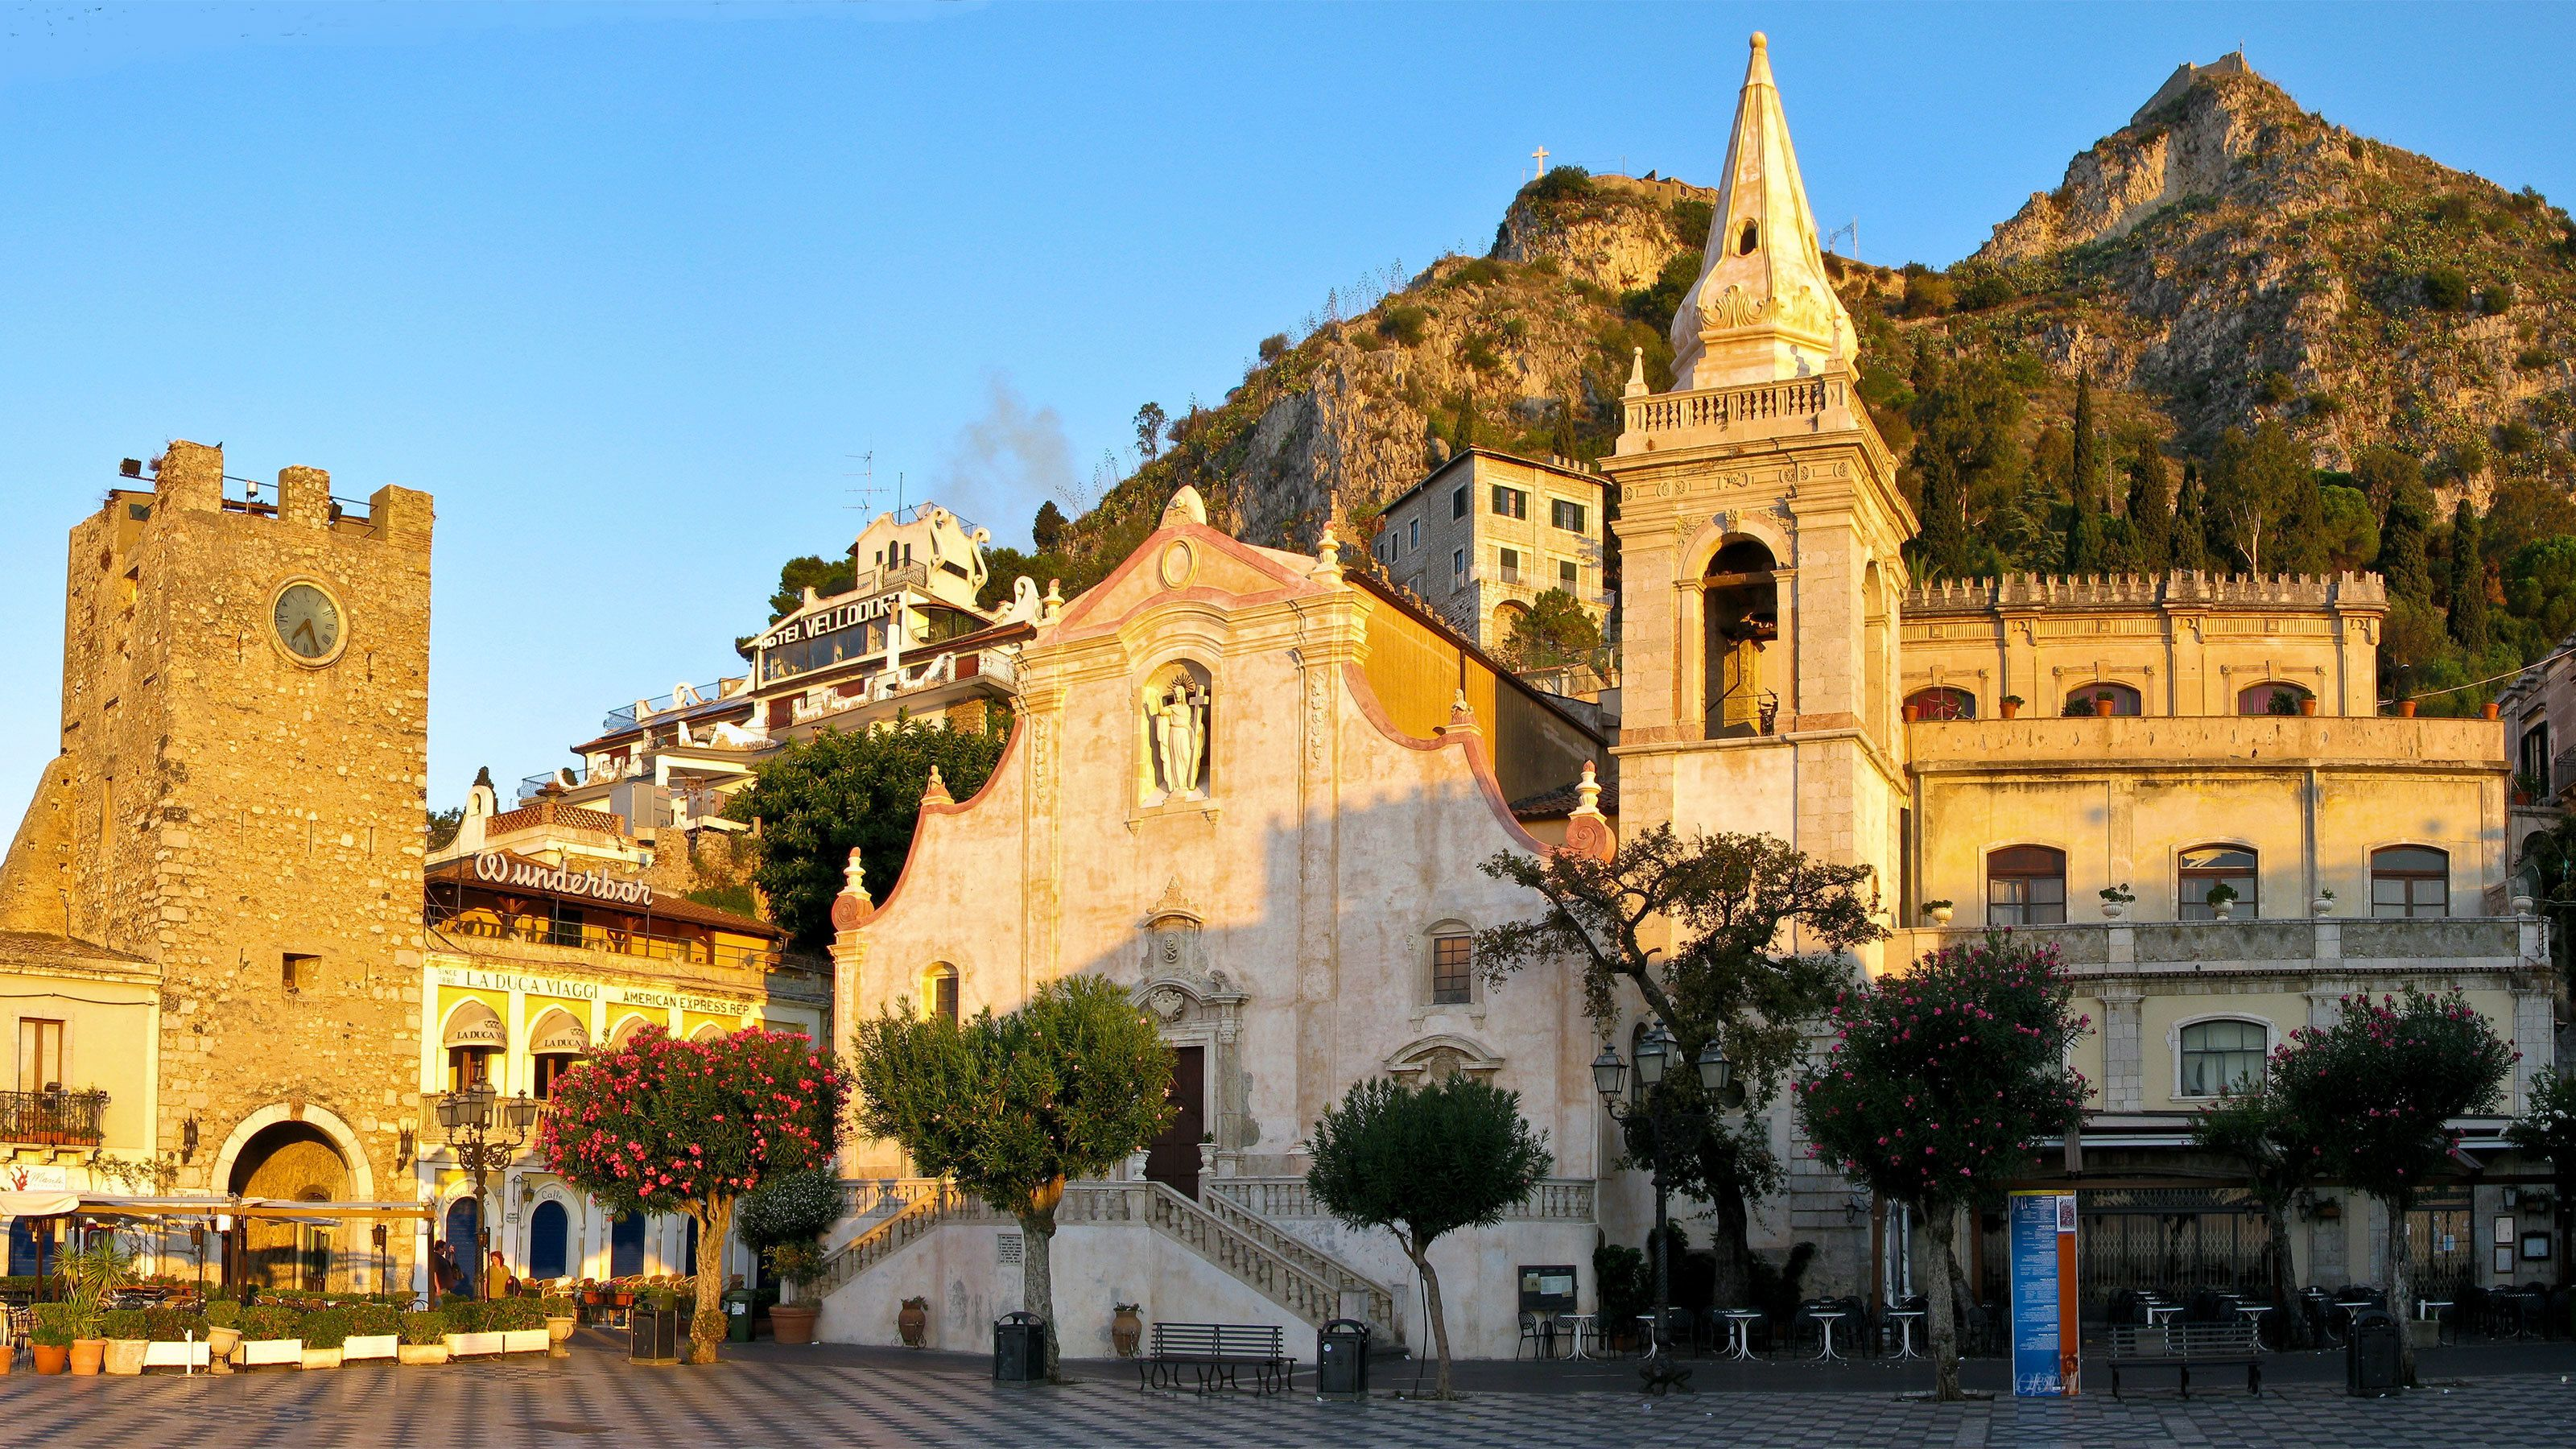 Historical buildings in the city center with mountains in the background in Taormina